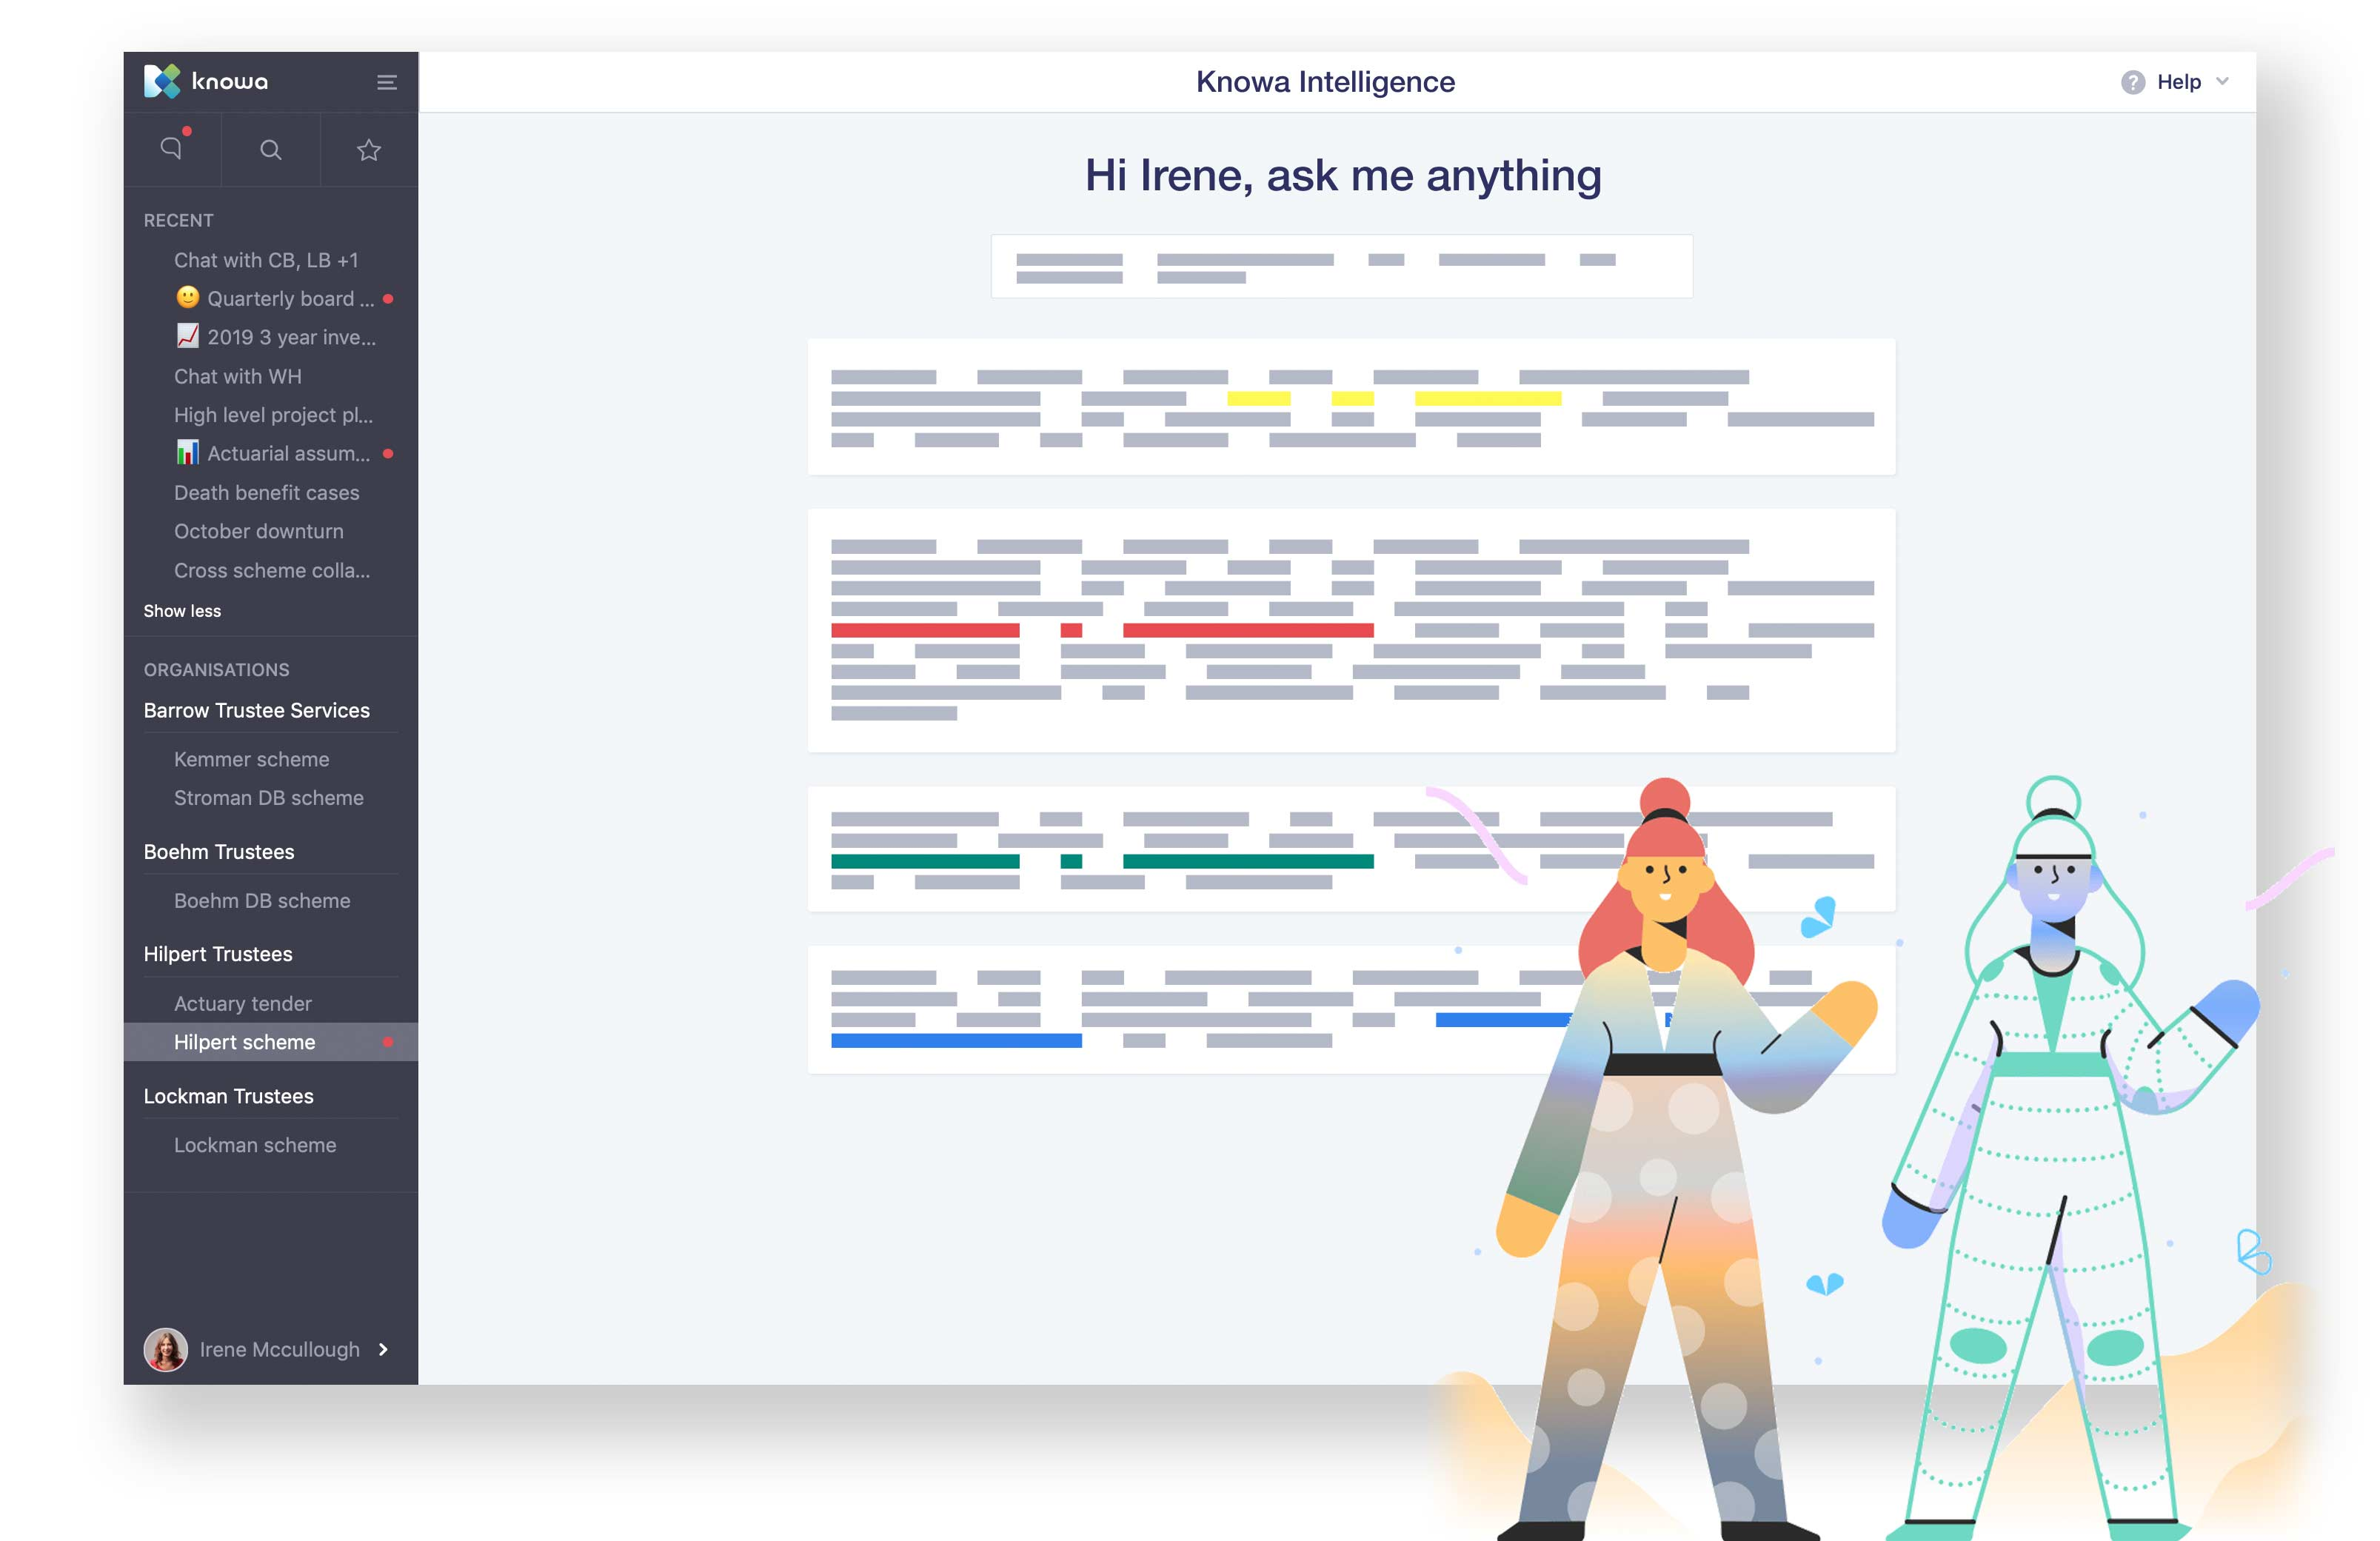 Ask Knowa anything